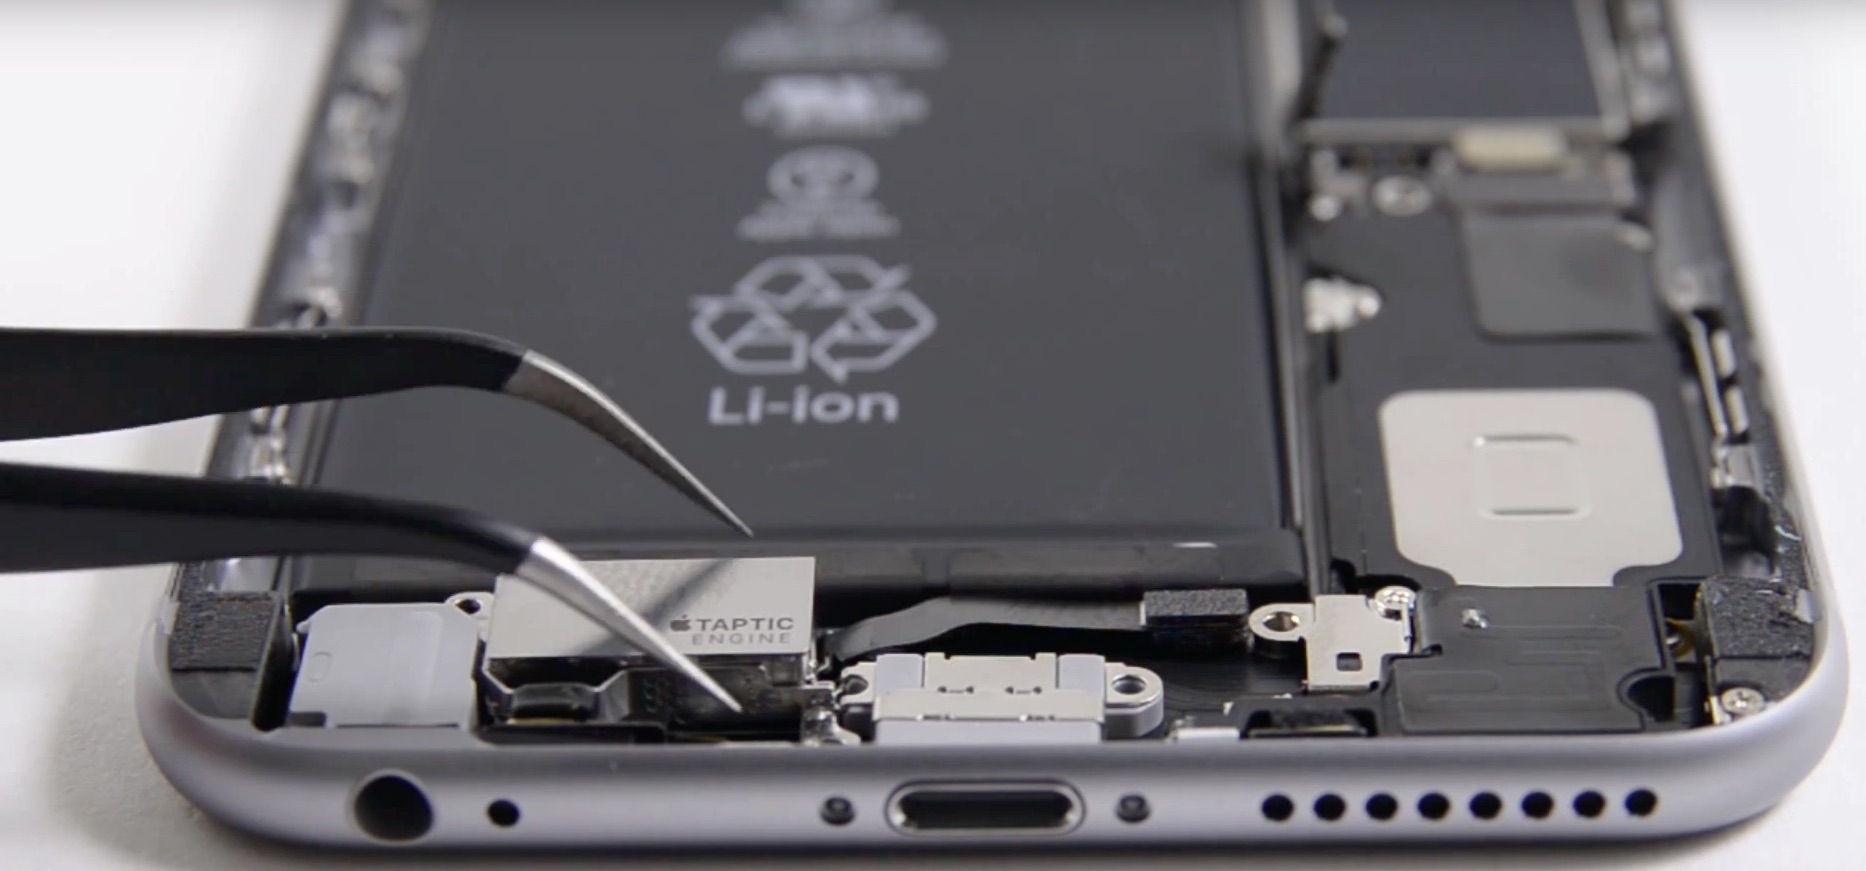 The usual suspects tear down the iPhone 6s and iPhone 6s Plus